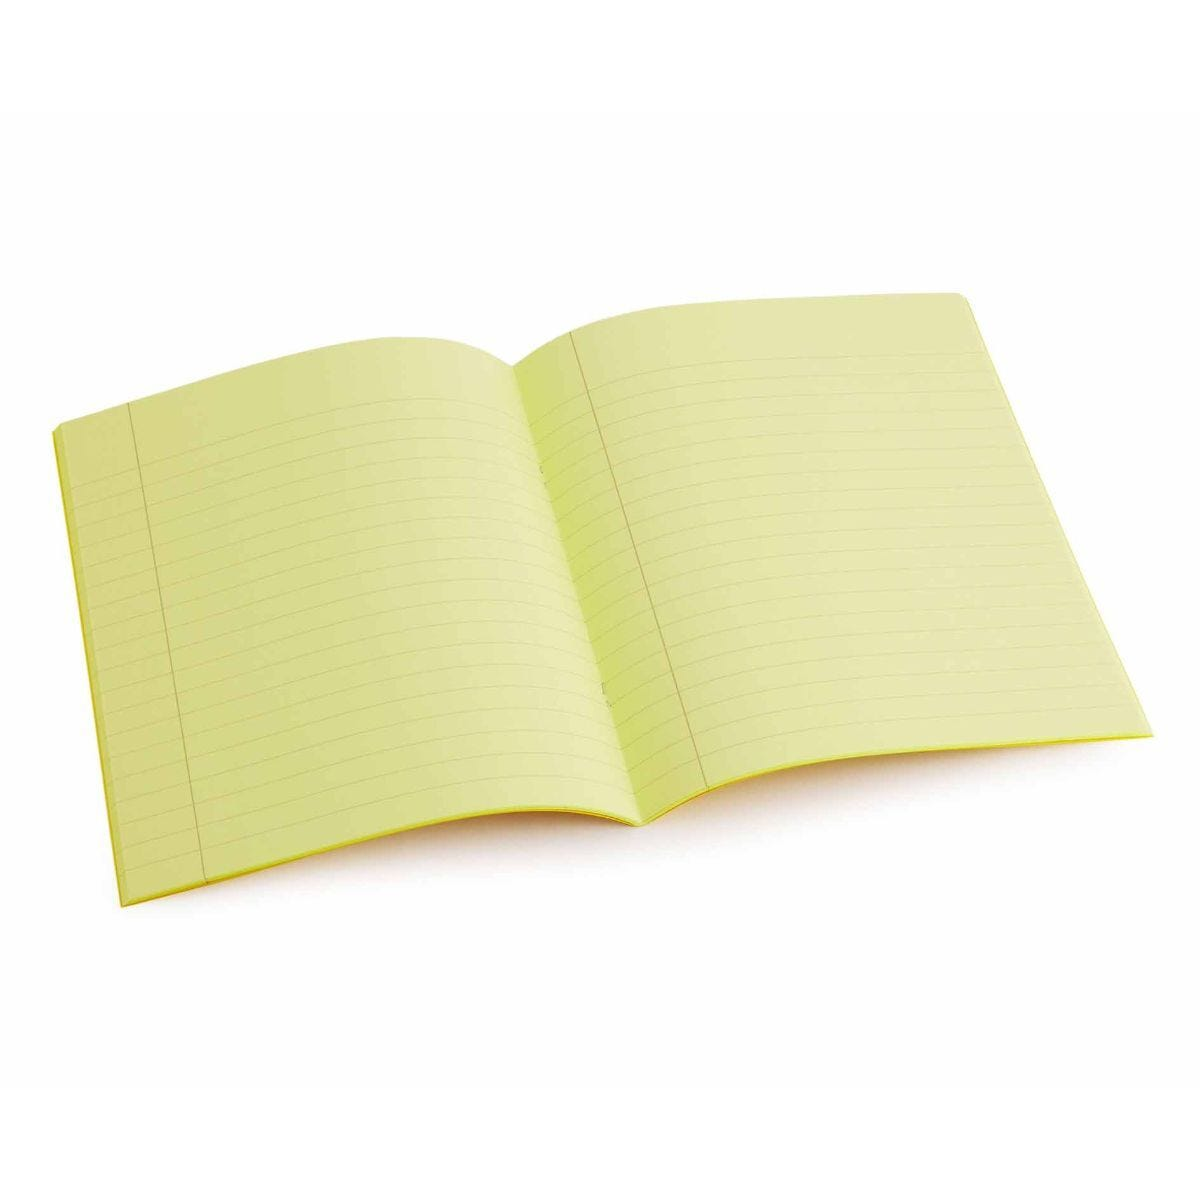 Tinted Exercise Book Standard 7x9 Lined 10mm